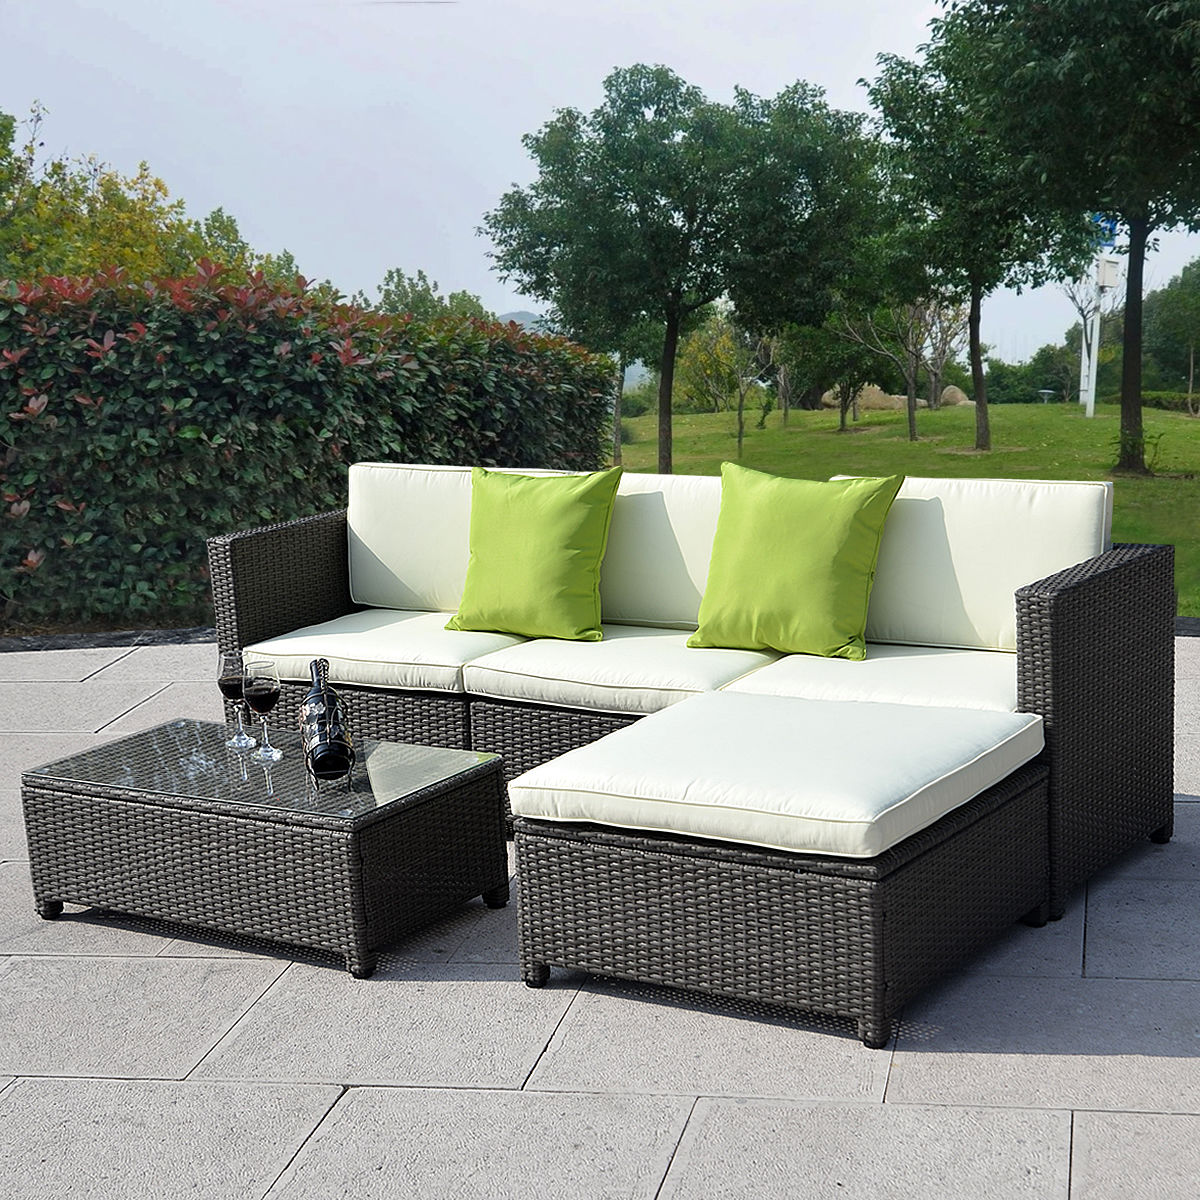 Outdoor patio wicker sofa set 5pc pe rattan for Outdoor patio set